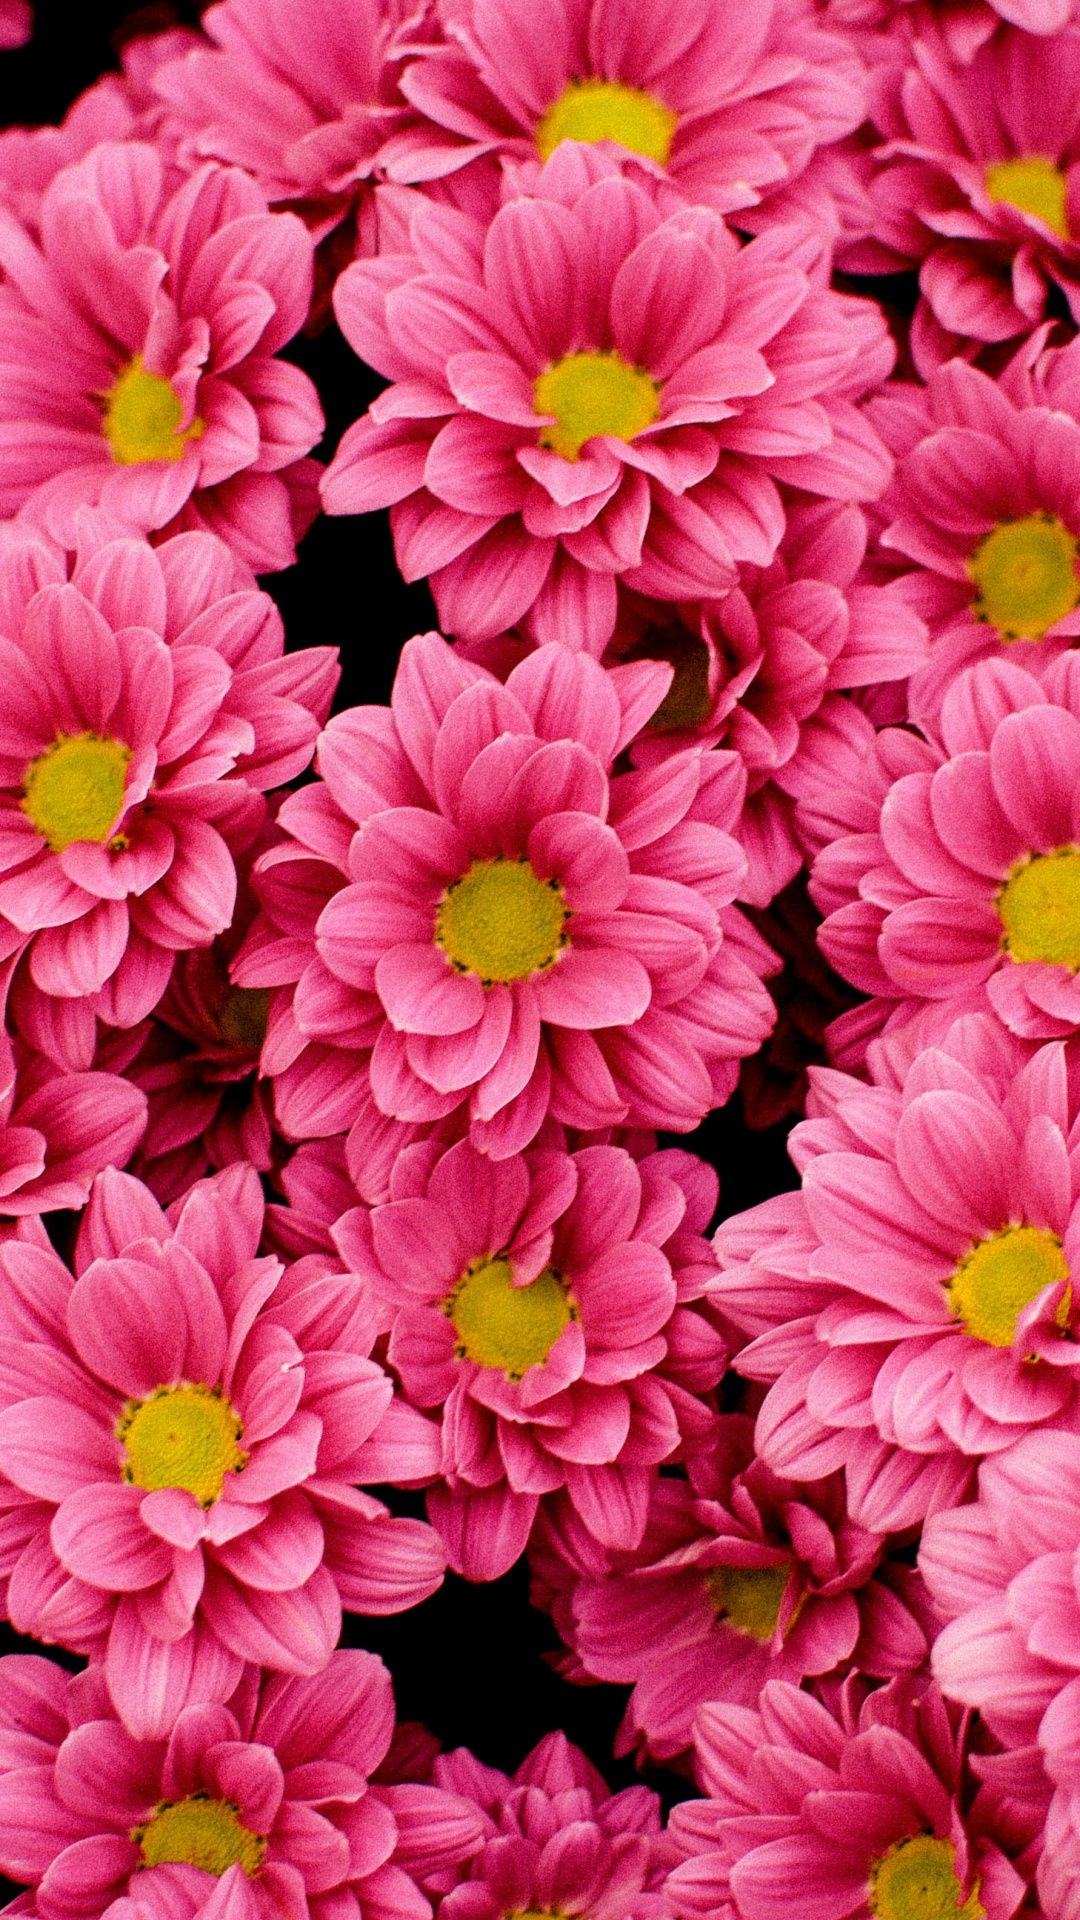 Bright Pink Flowers Wallpaper Pink Flowers Wallpaper Flower Wallpaper Cute Flower Wallpapers